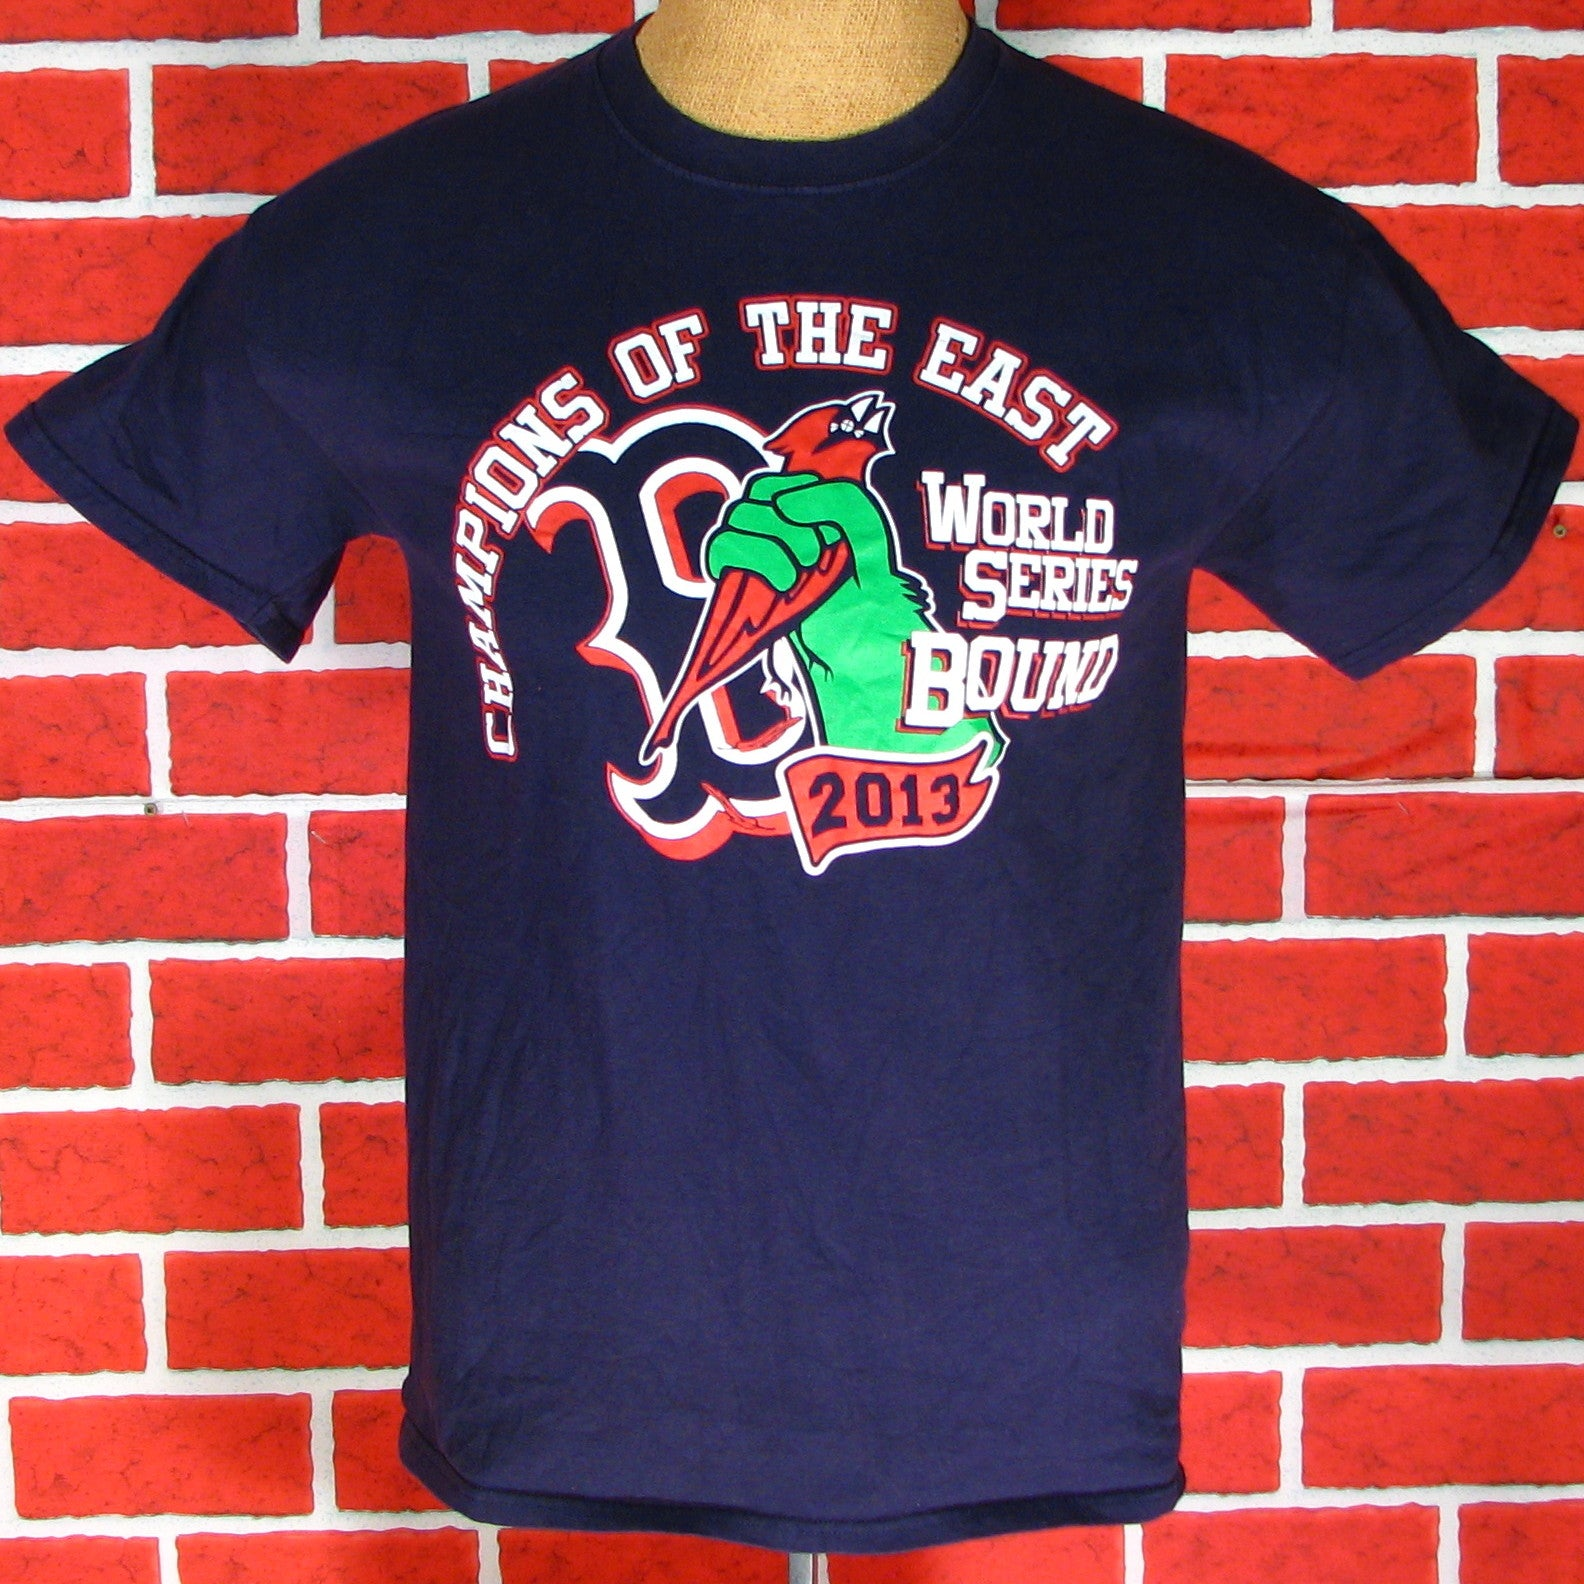 2013 Boston Red Sox Champions of the East T-Shirt